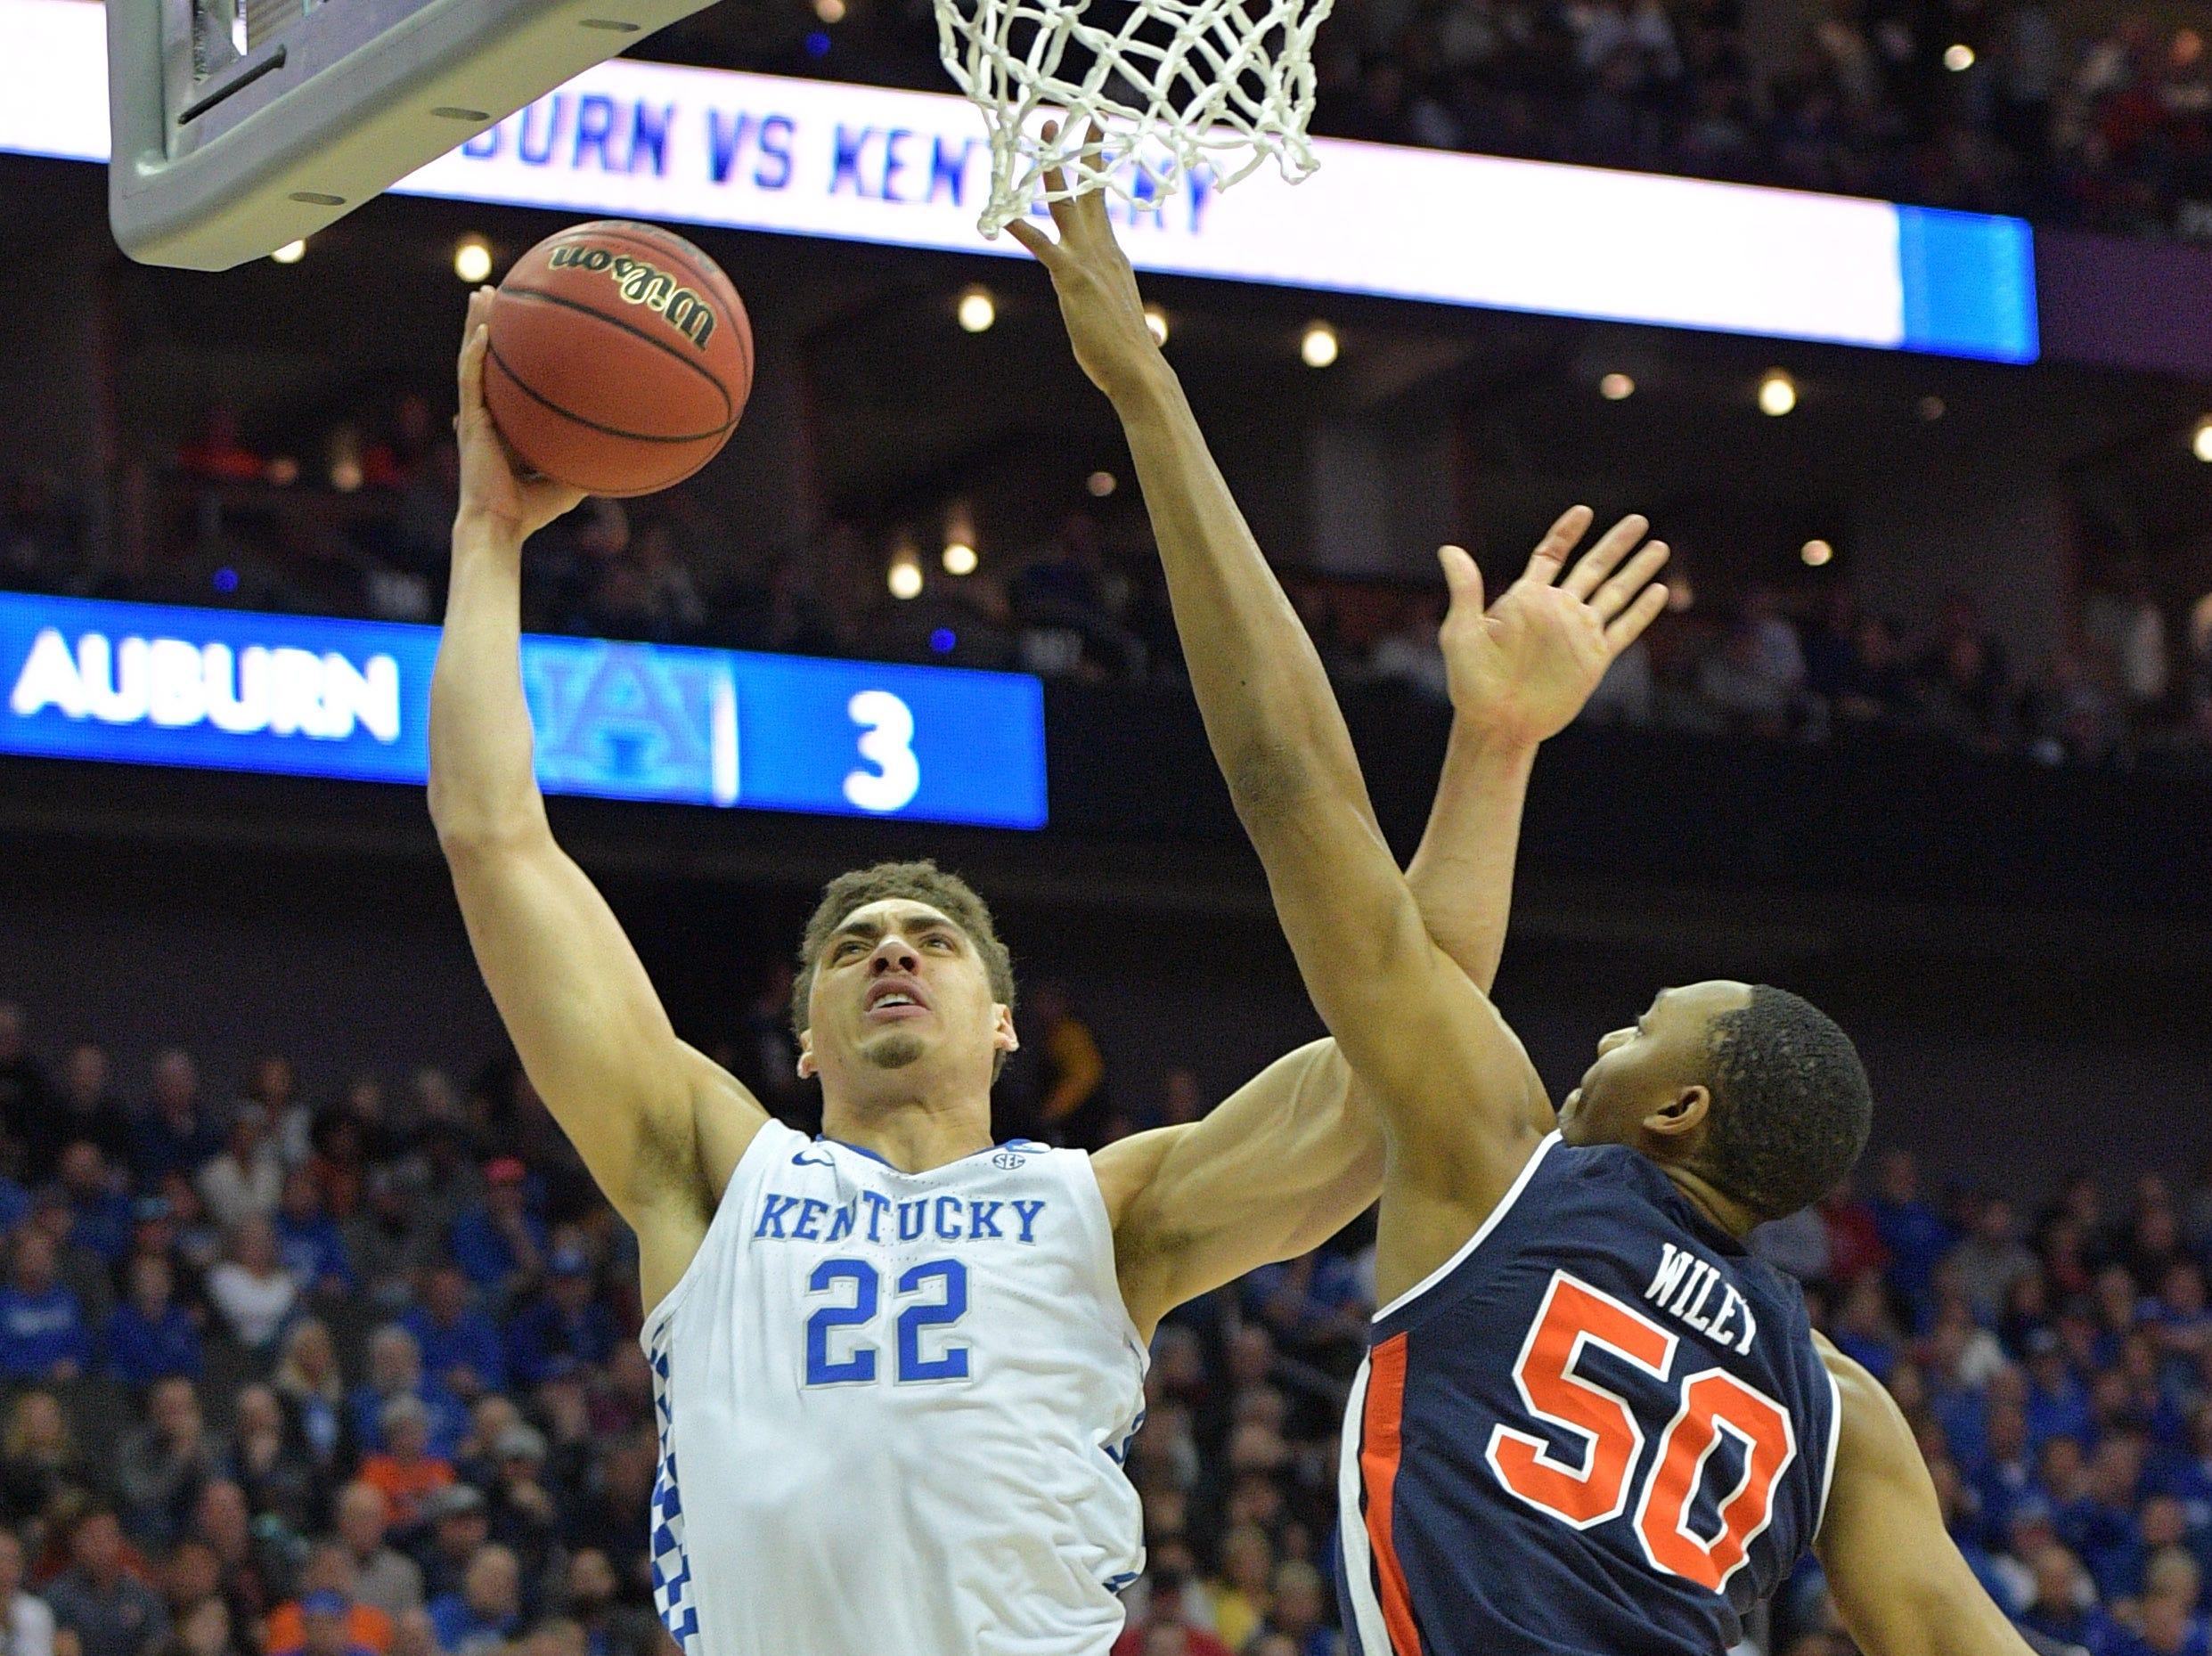 Mar 31, 2019; Kansas City, MO, United States; Kentucky Wildcats forward Reid Travis (22) shoots against Auburn Tigers center Austin Wiley (50) during the first half in the championship game of the midwest regional of the 2019 NCAA Tournament at Sprint Center. Mandatory Credit: Denny Medley-USA TODAY Sports